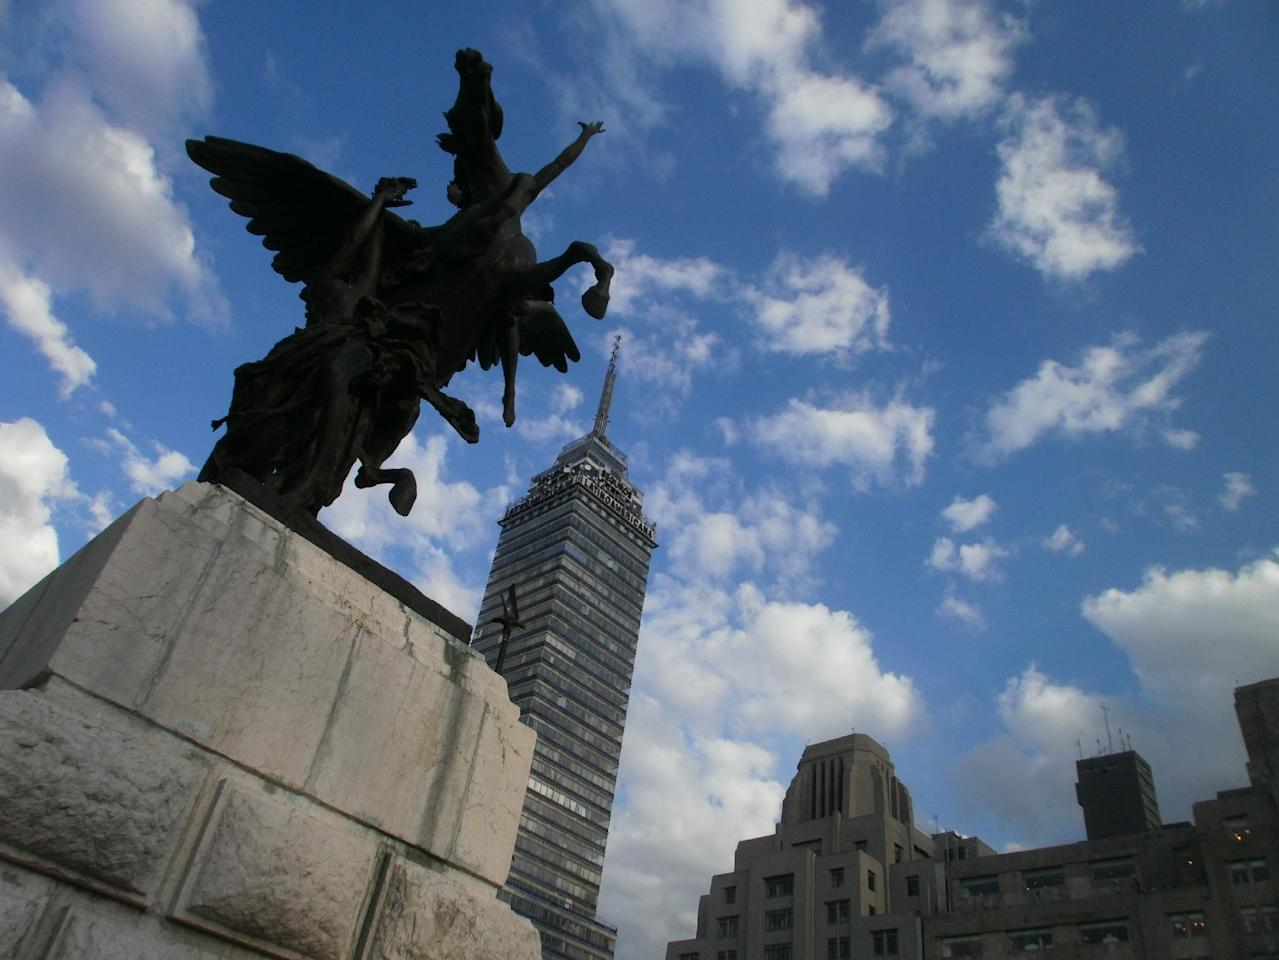 In this photo taken Aug. 19, 2011 and released by blind photographer Jose Sebastian, a sculpture next to Mexico City's Palace of Fine Arts and the Torre Latinoamericana building stand out against the skyline on Aug. 19, 2011. Sebastian is one of the 30 visually impaired or blind people learning photography with the help of the Mexico City foundation Ojos Que Sienten, or Eyes That Feel. (AP Photo/Jose Sebastian-Ojos que Sienten)